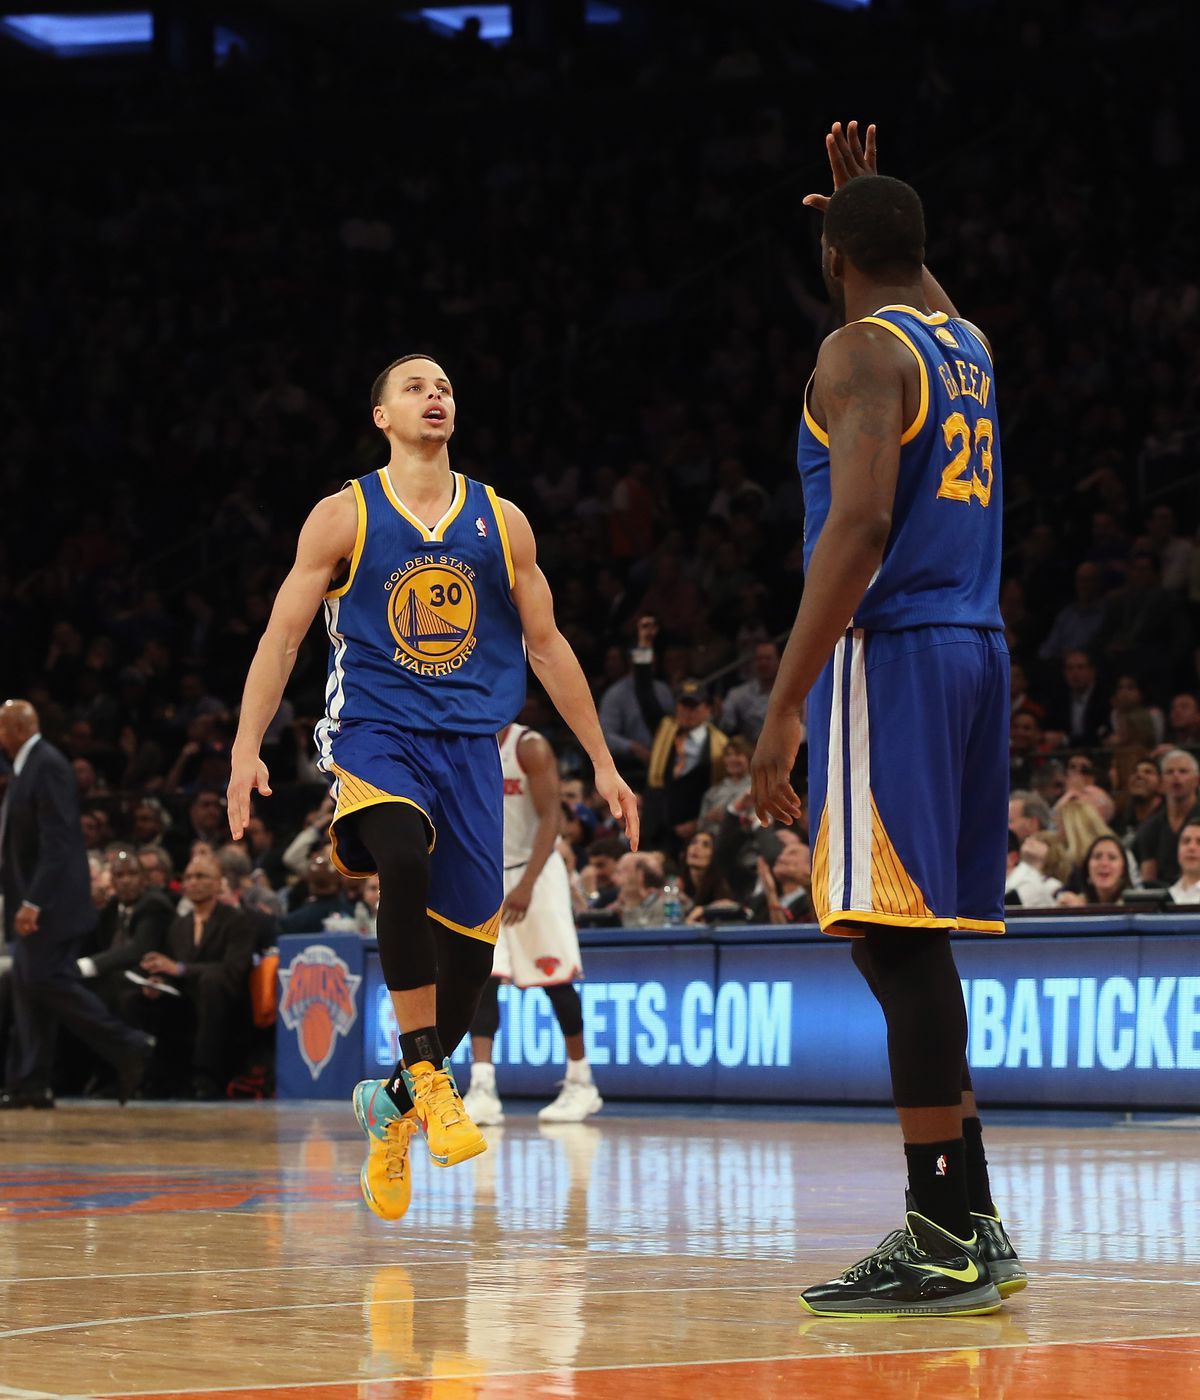 The night Stephen Curry scored 54 points at MSG and changed